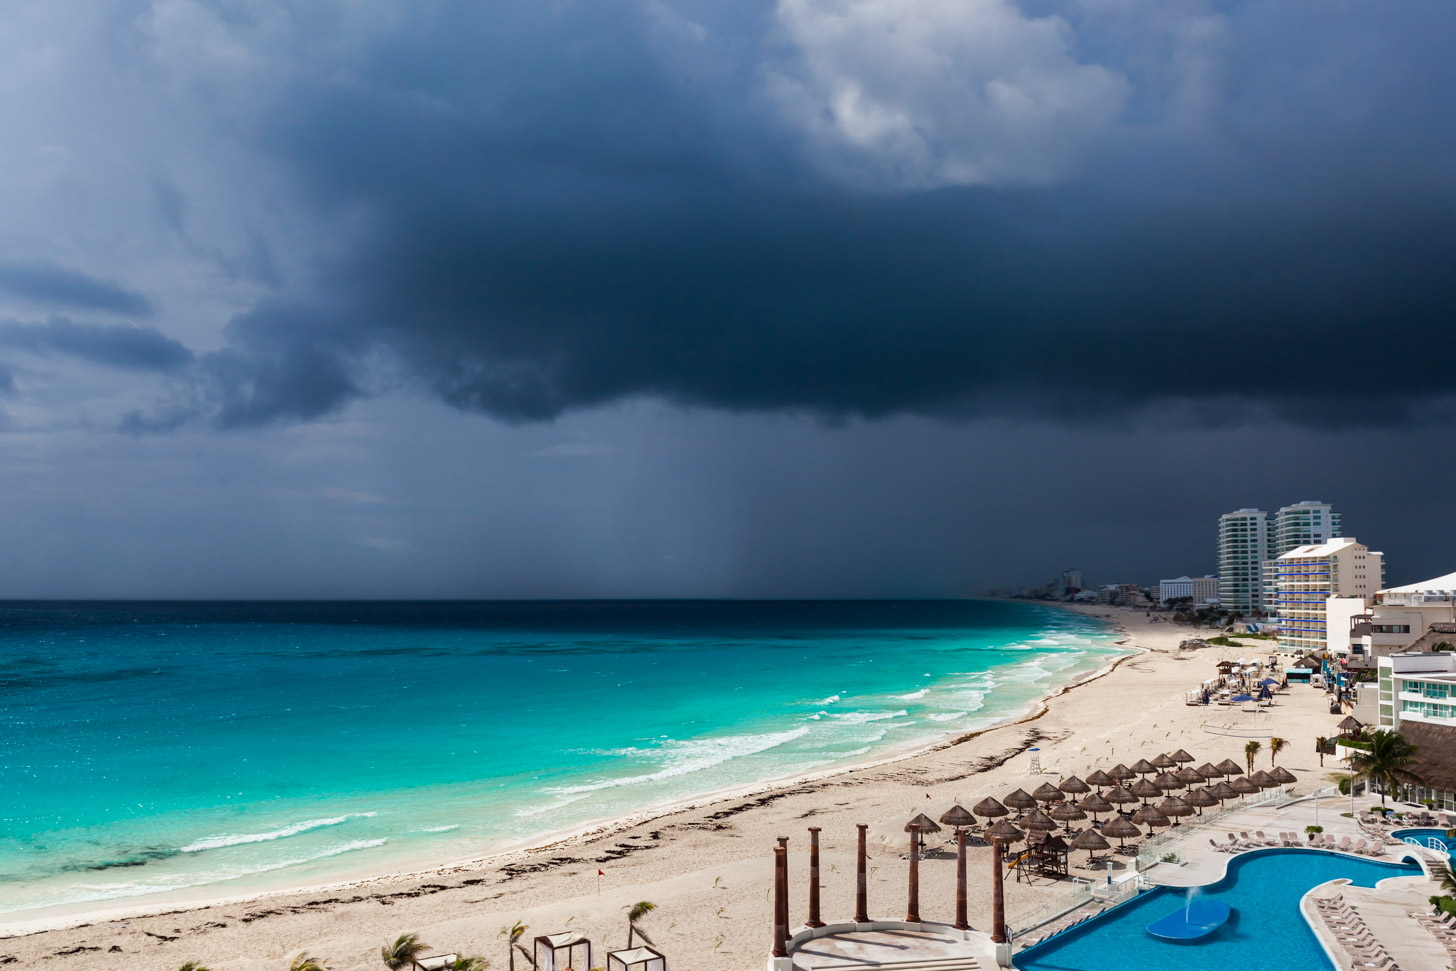 onweer boven Cancun